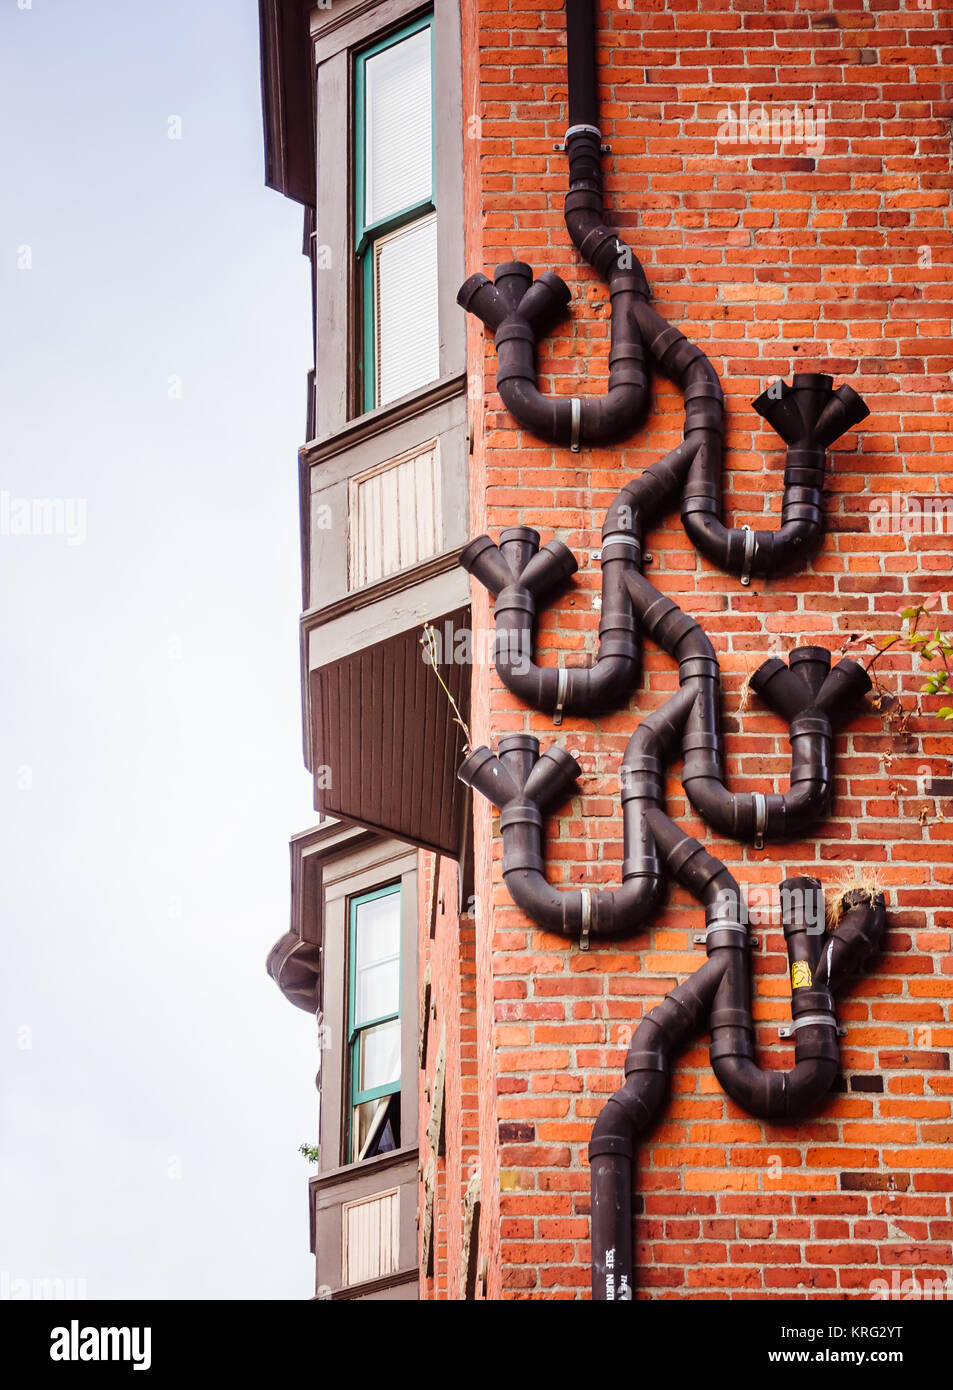 Rain pipes on the wall - Stock Image